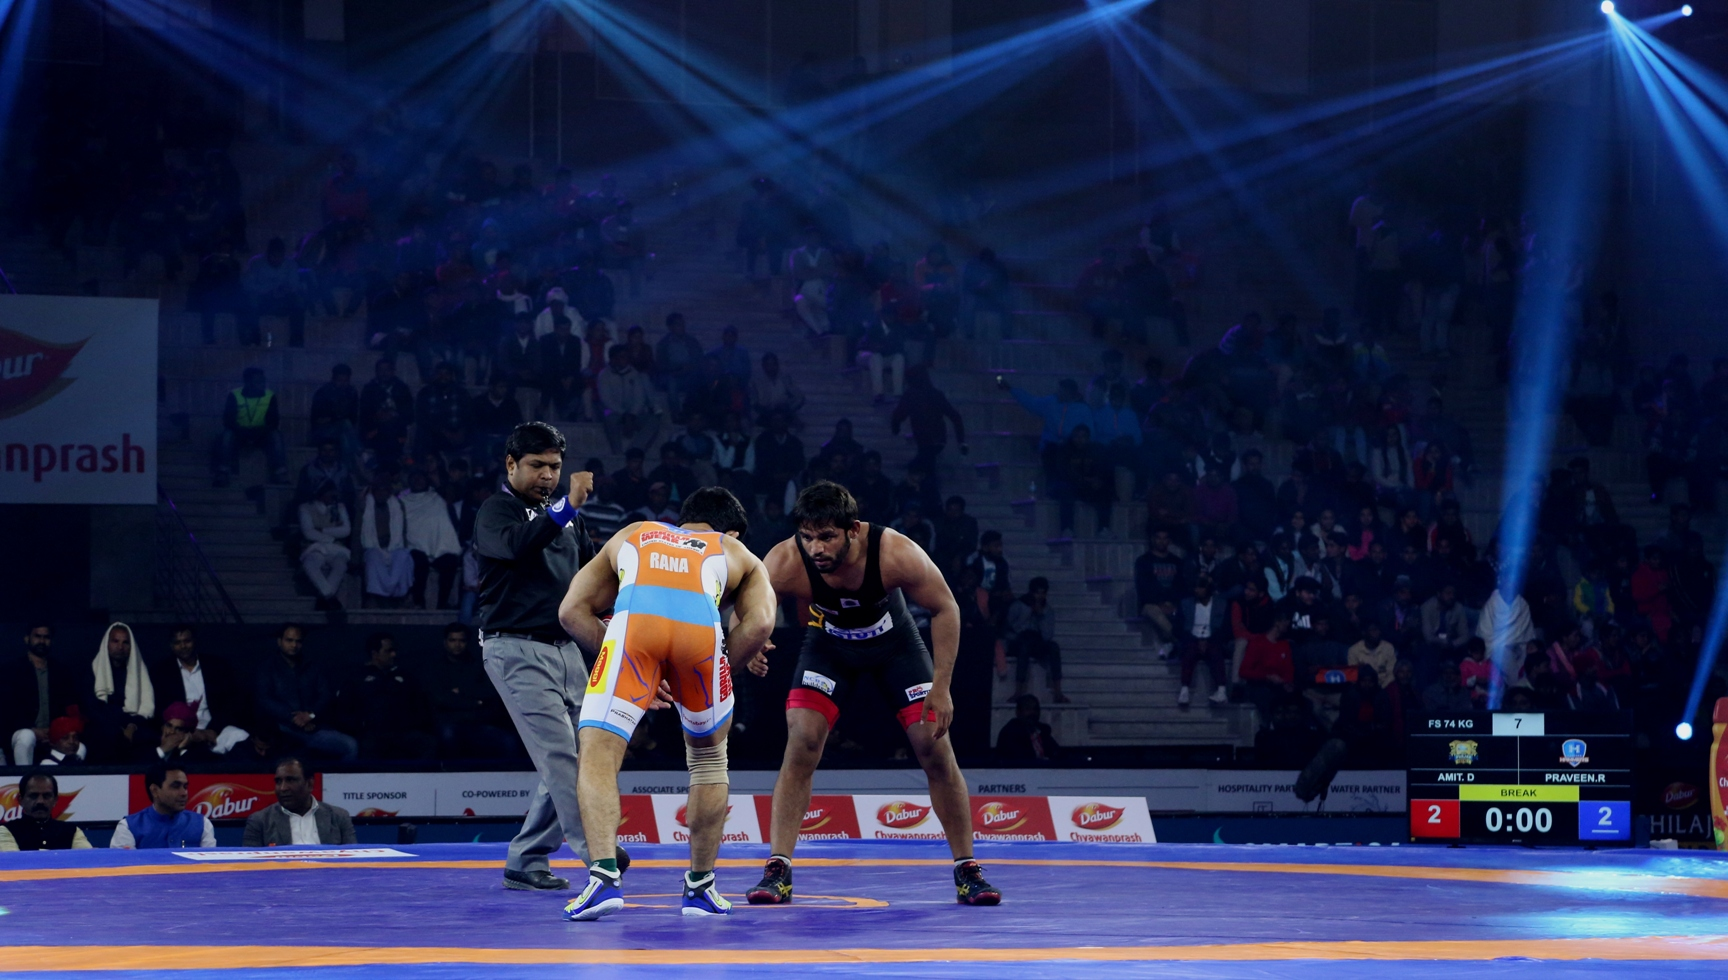 PWL 4- Amit Dhanker of Punjab Royals wins it for his team in the final and deciding bout against Haryana Hammers Praveen Rana